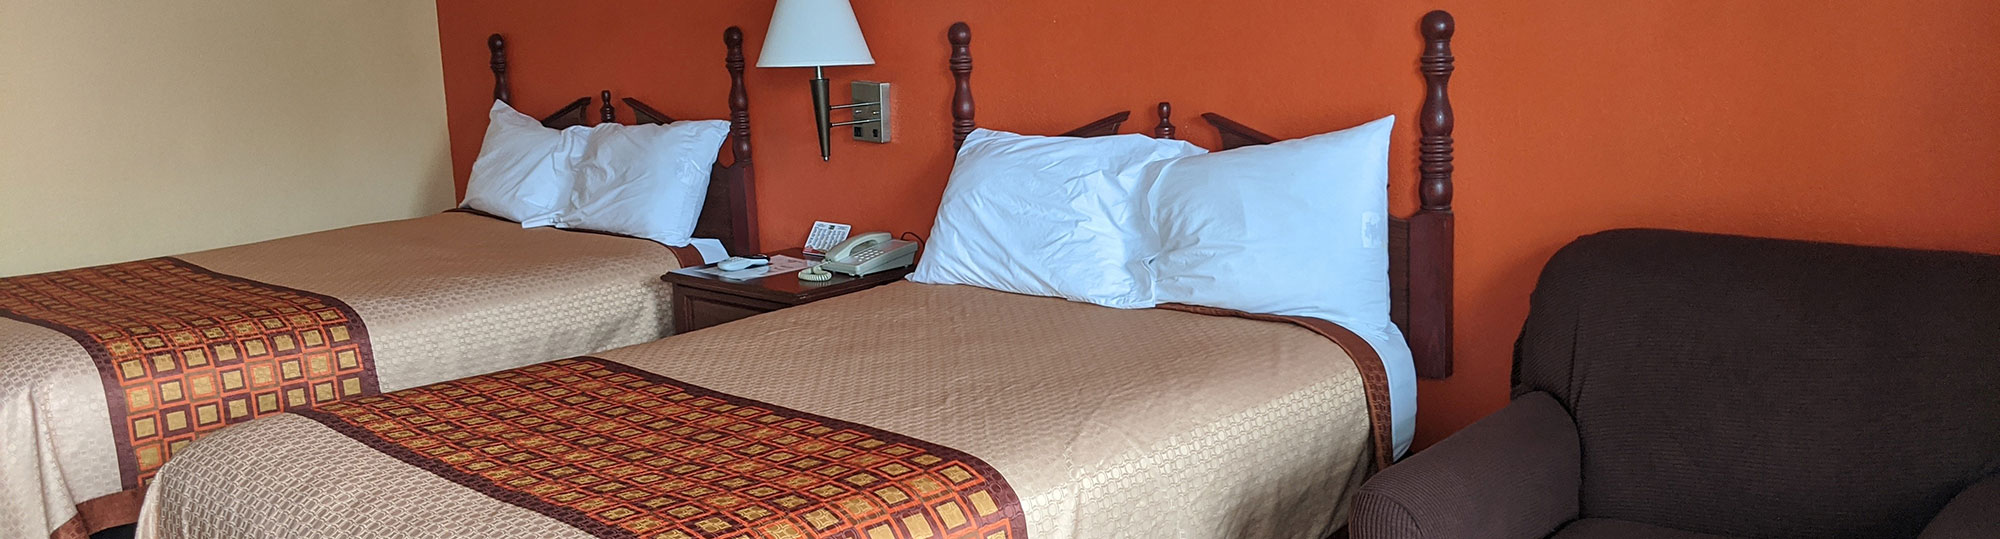 Key West Inn Hotels and Resorts Clanton